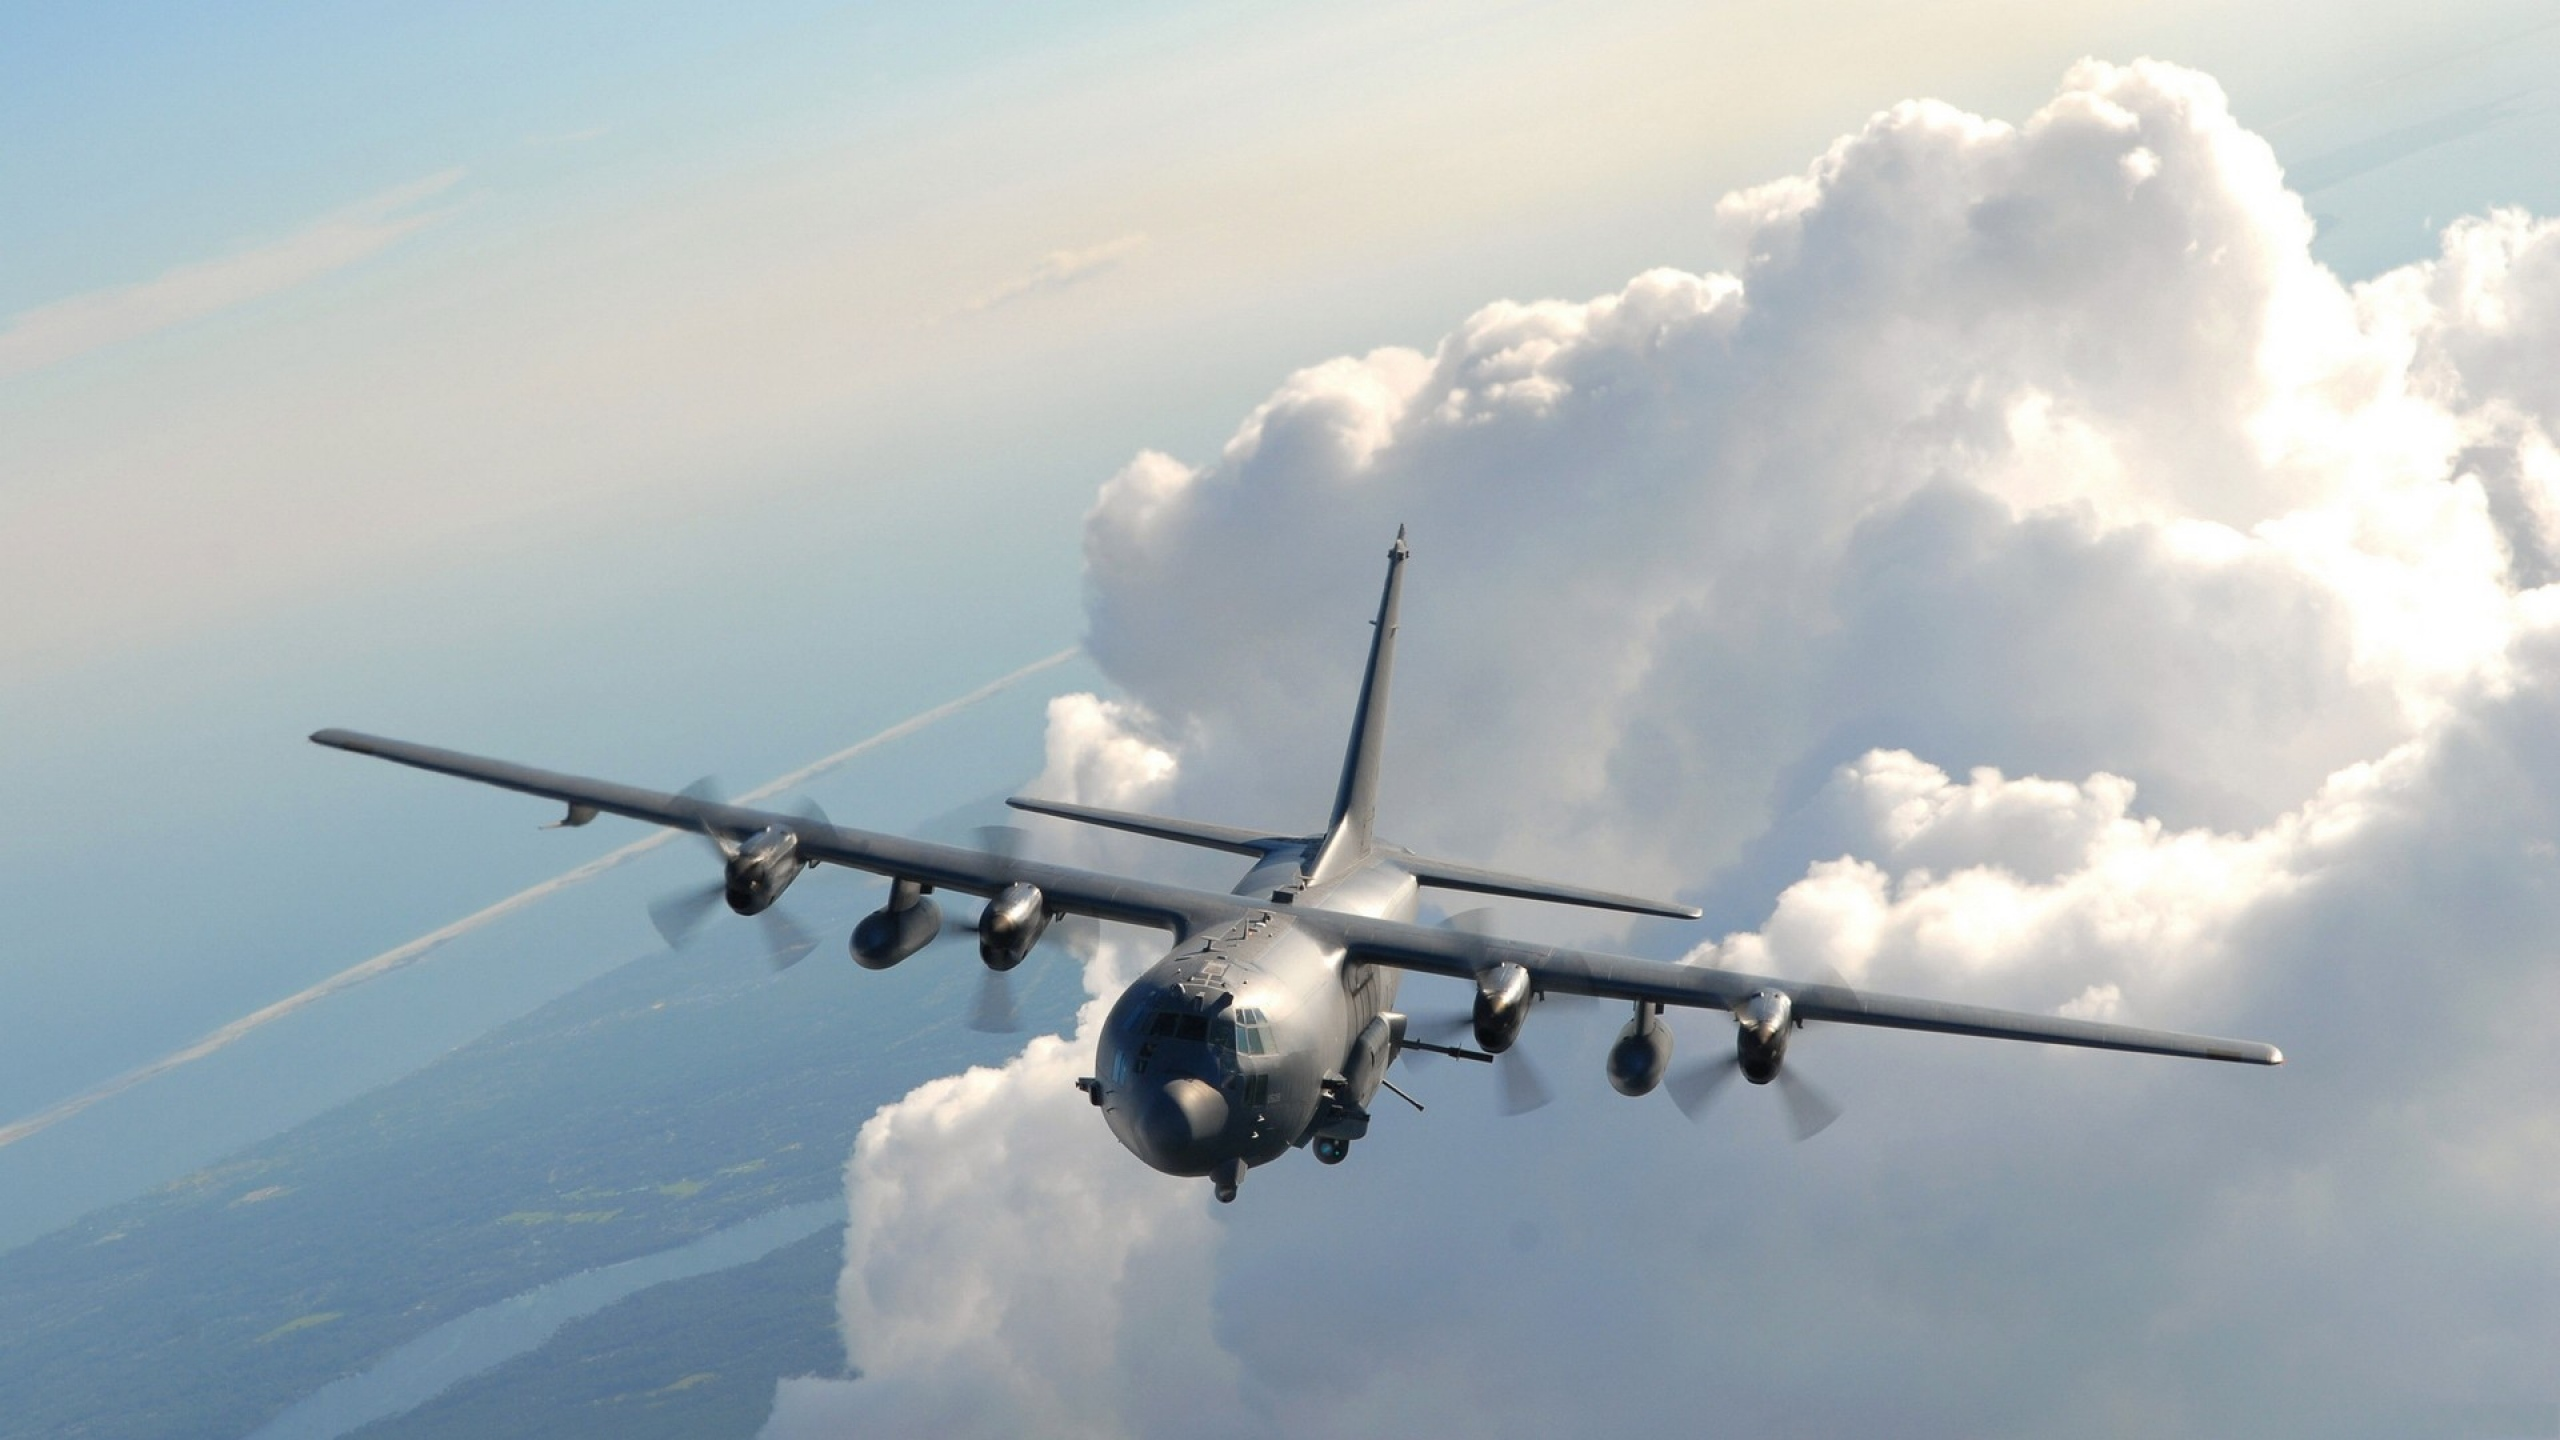 ac-130-gunship-hd-wallpaper